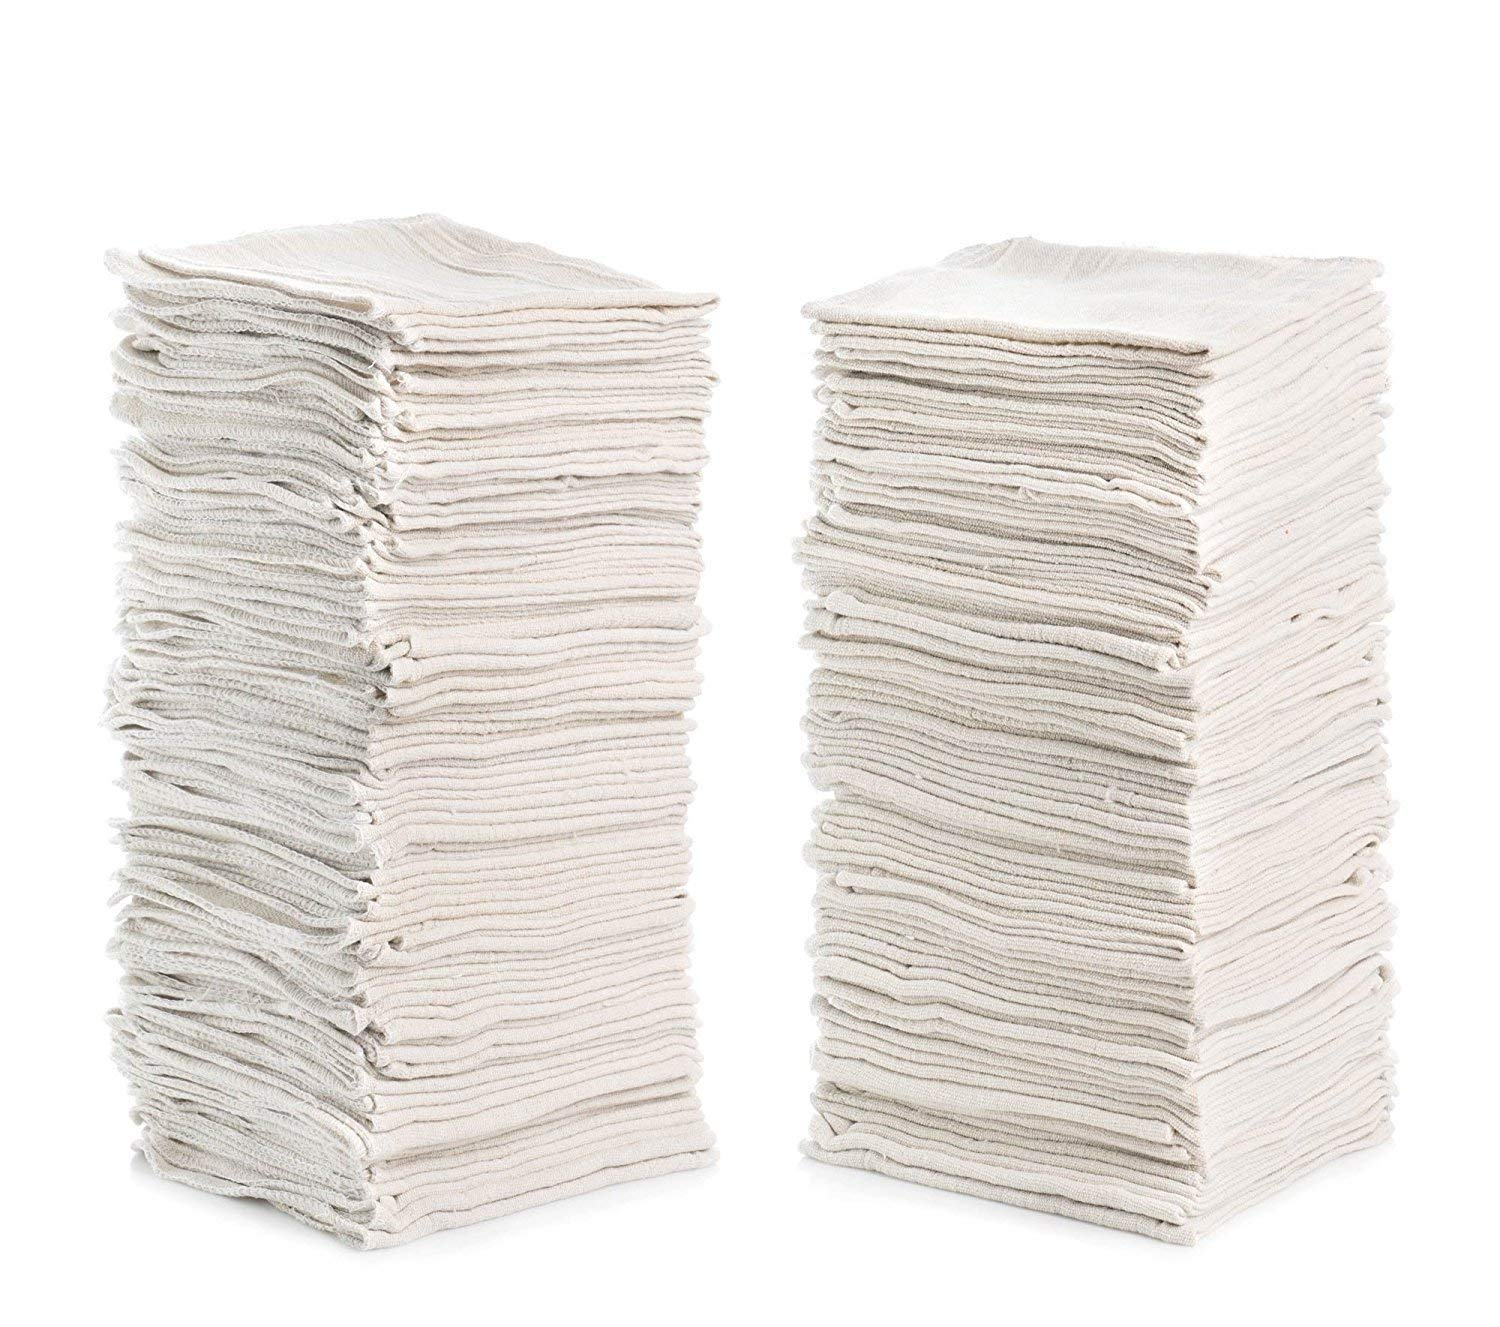 """Simpli-Magic 79170 Commercial Grade White Shop Towels (Pack of 500) Size 12"""" x 14"""", 500 Pack"""